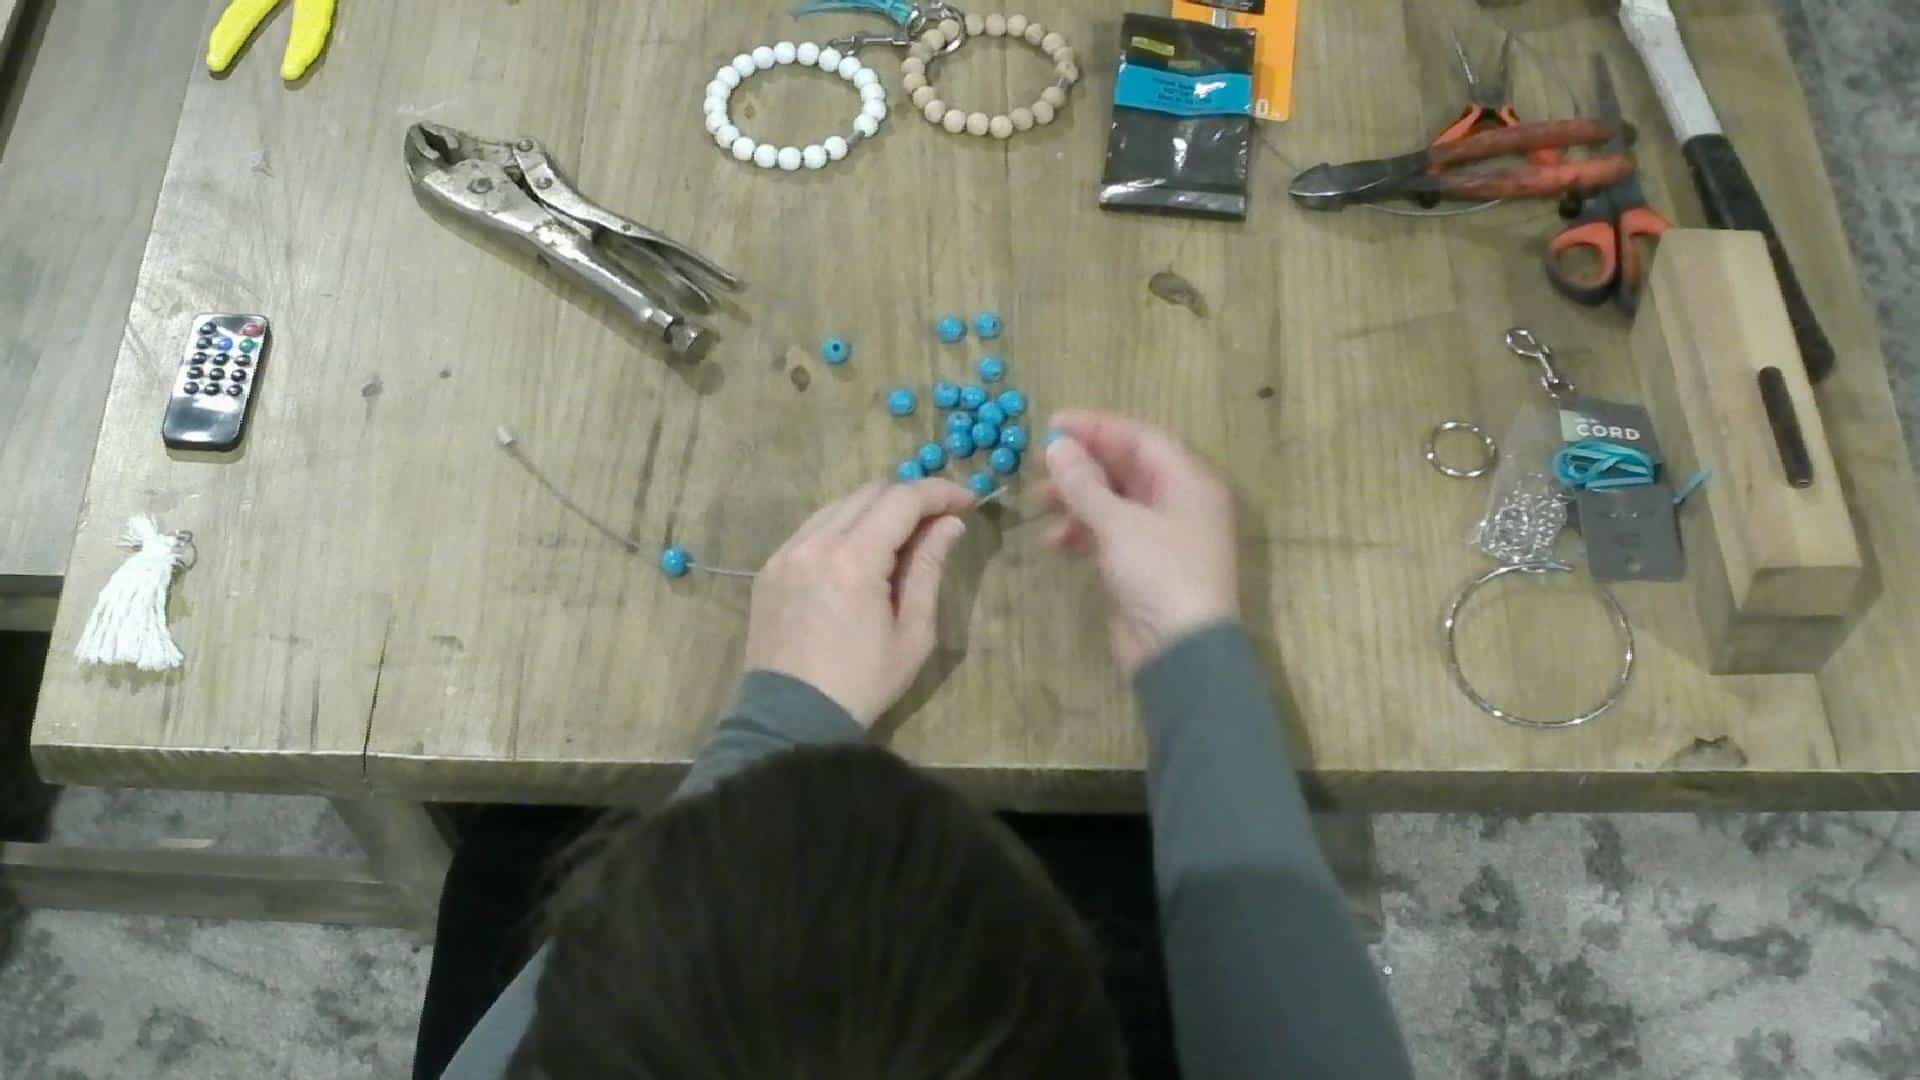 Stringing the beads